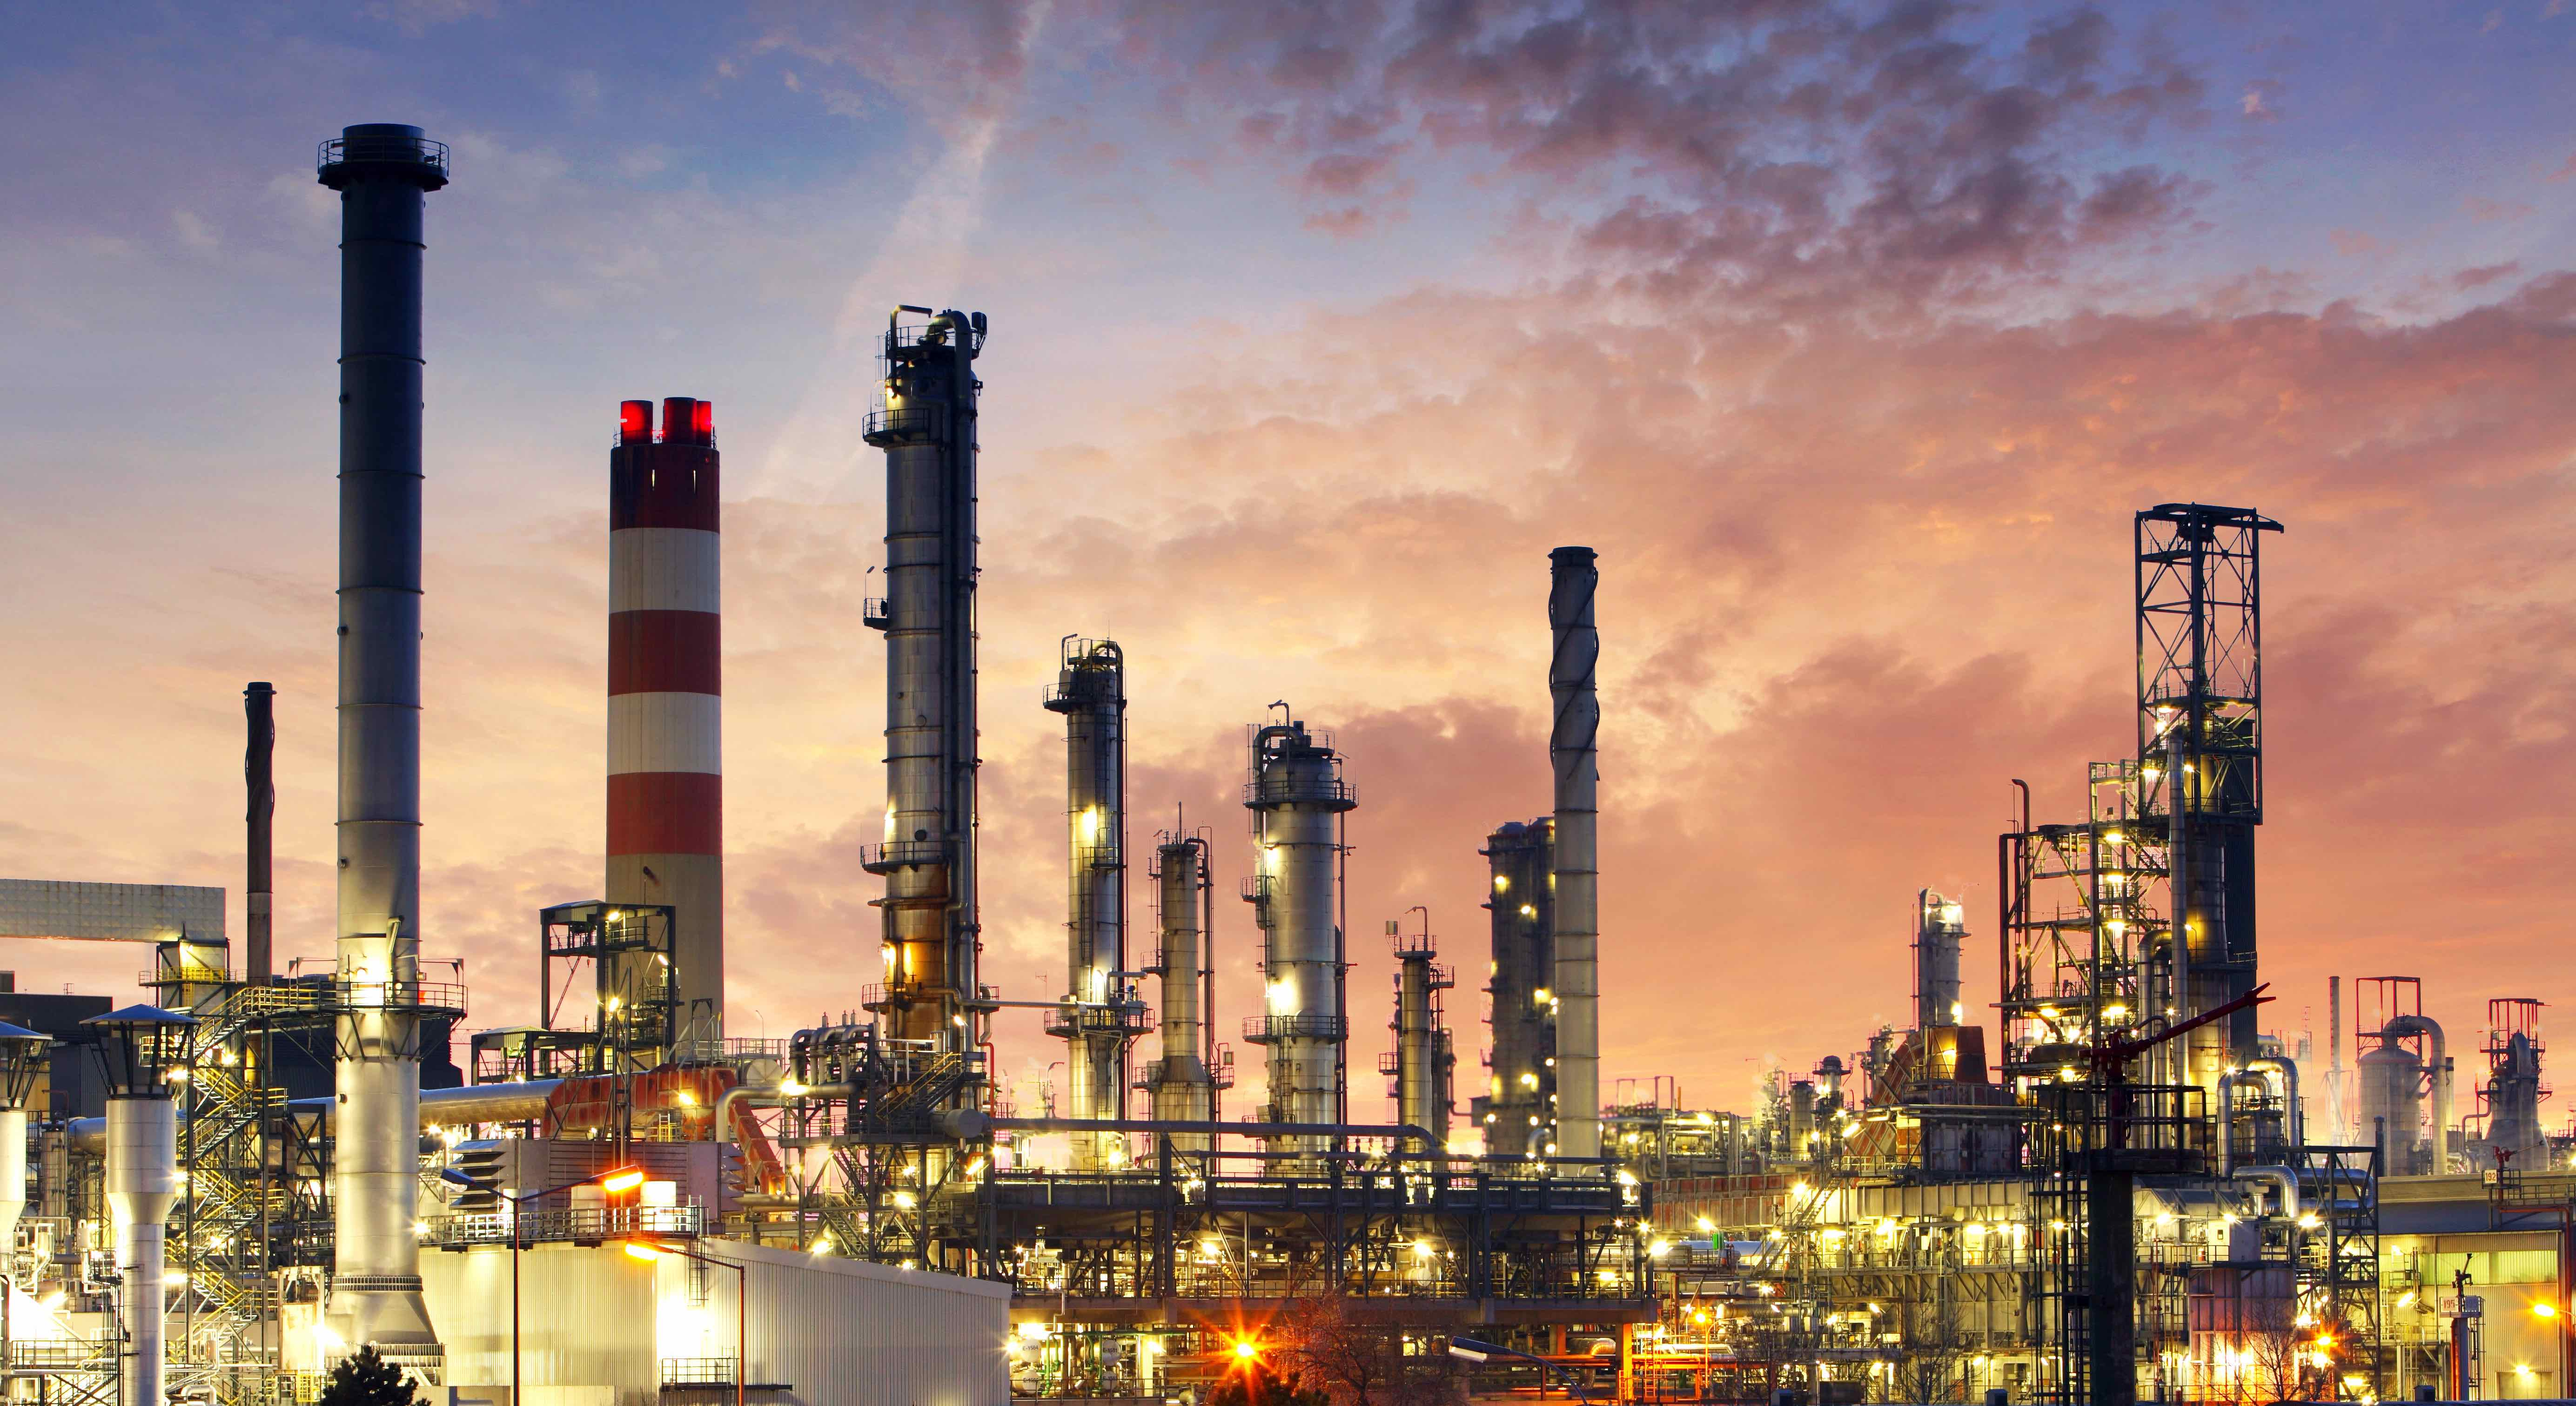 Oil refineries often have harsh conditions that can cause excessive wear and tear to unprotected storage cabinets.